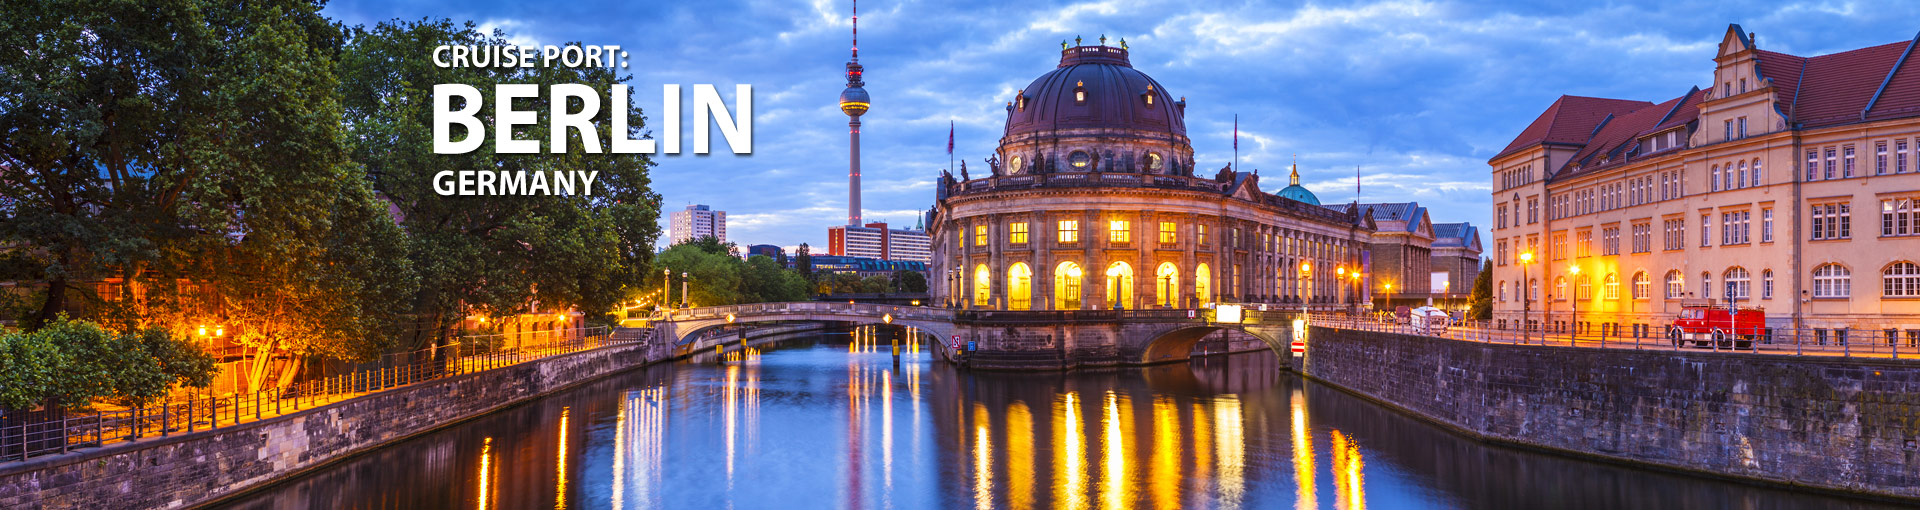 Cruises from Berlin, Germany